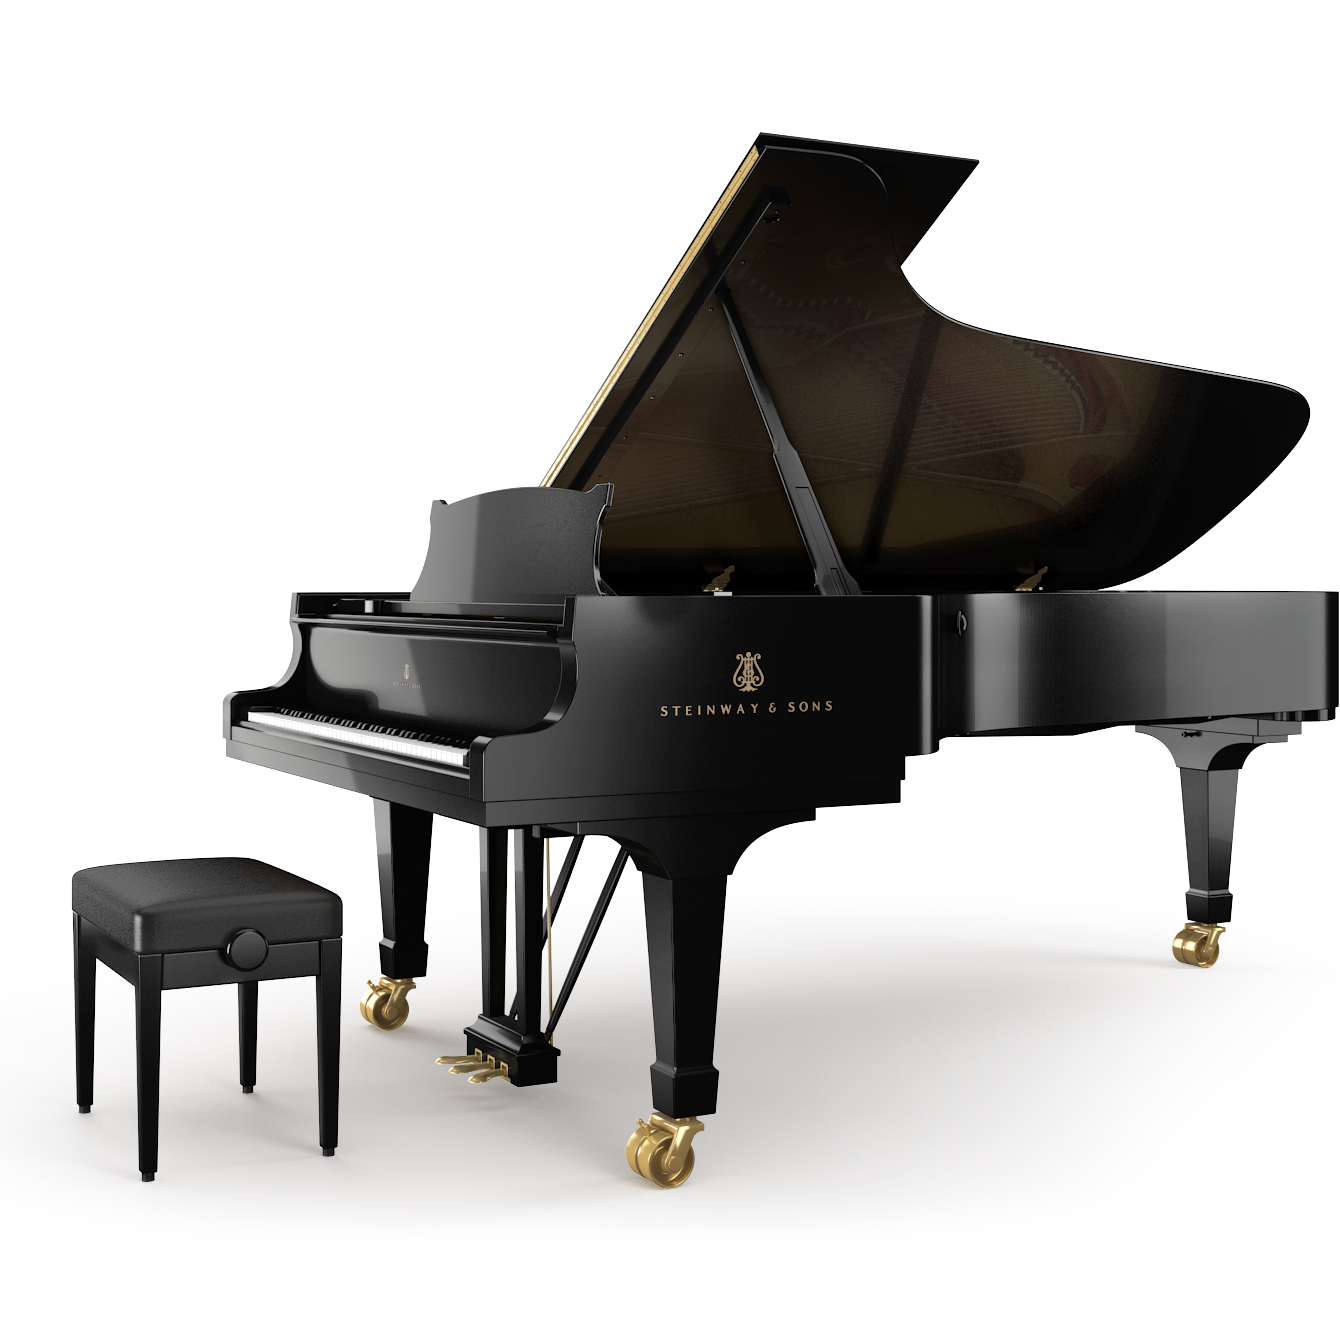 Piano clipart side view View Side and Cliparts Piano